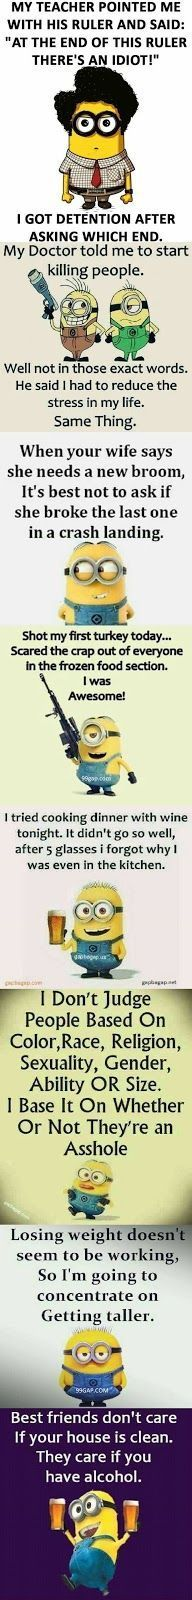 #Funny #Quotes Collection By The Minions - Funny Minion Meme, funny minion memes, funny minion quotes, Funny Quote, Minion Quote Of The Day - Minion-Quotes.com